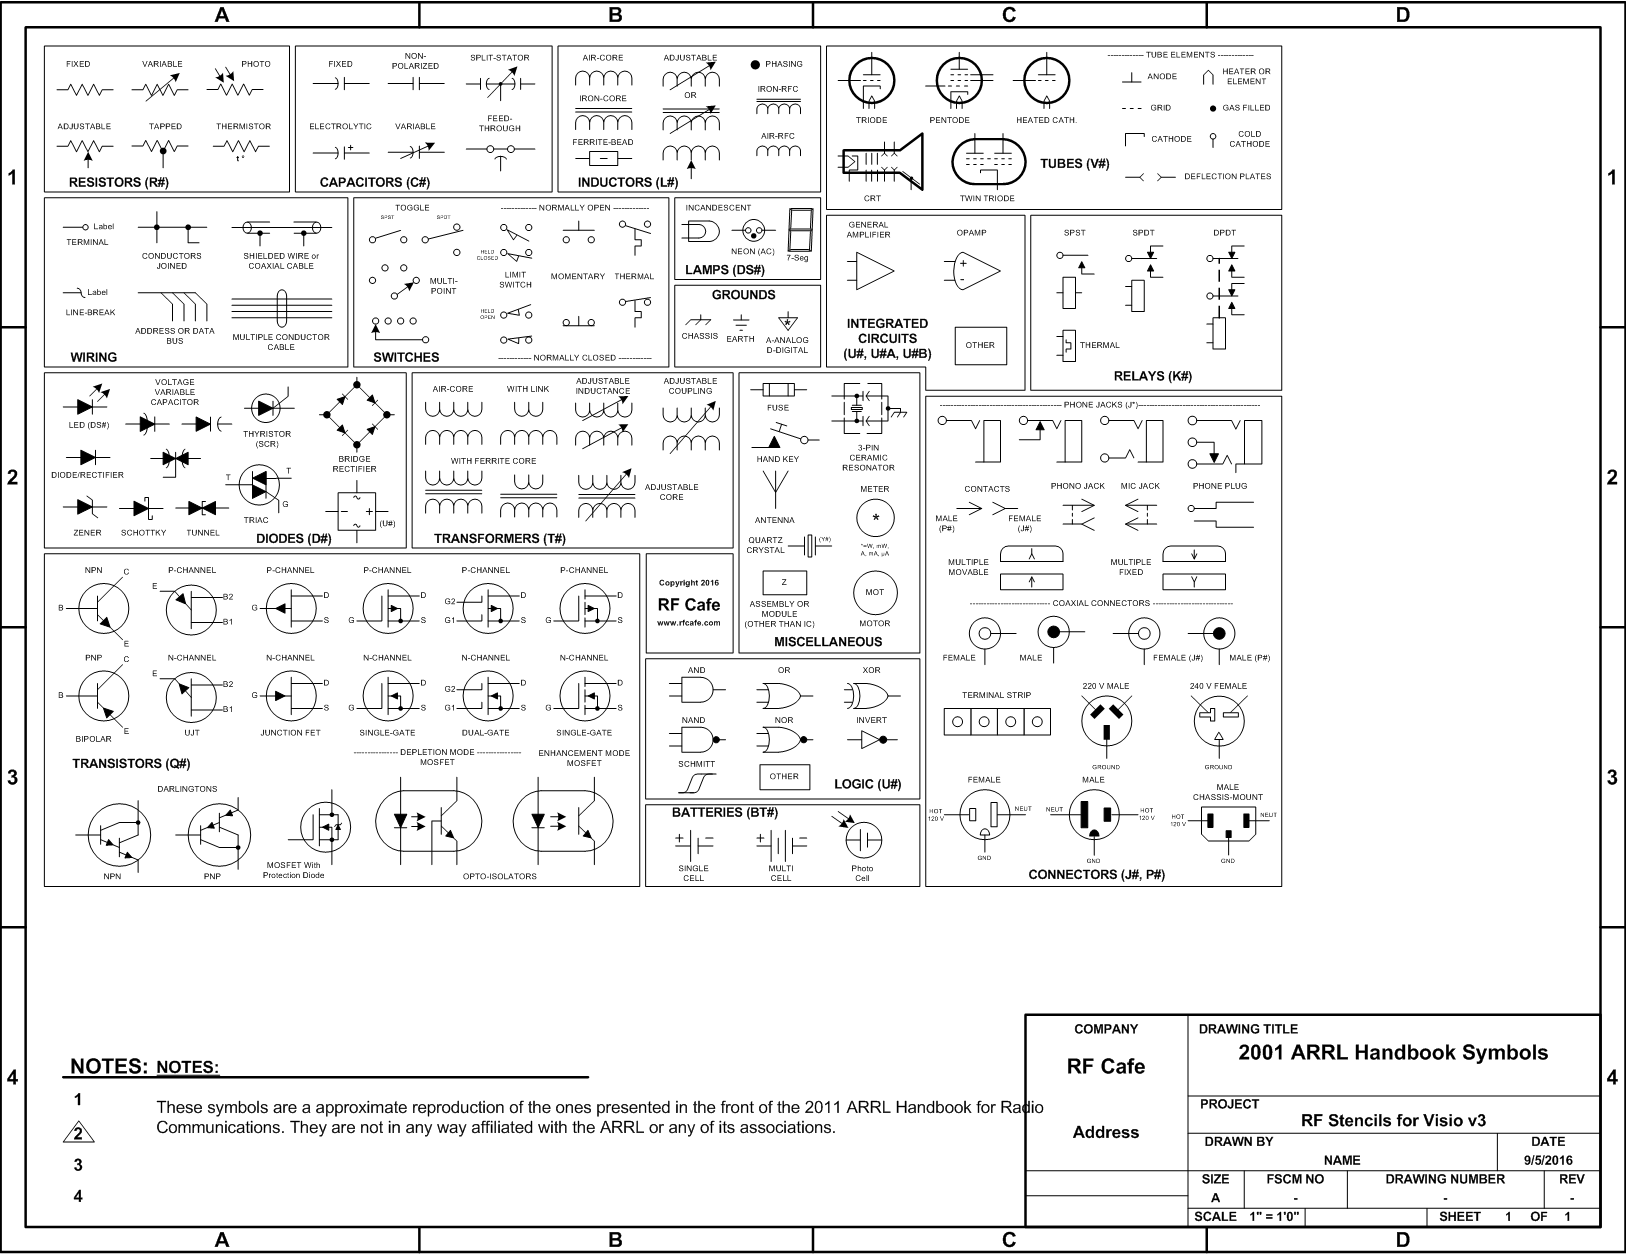 Electrical Drawing Symbols Visio